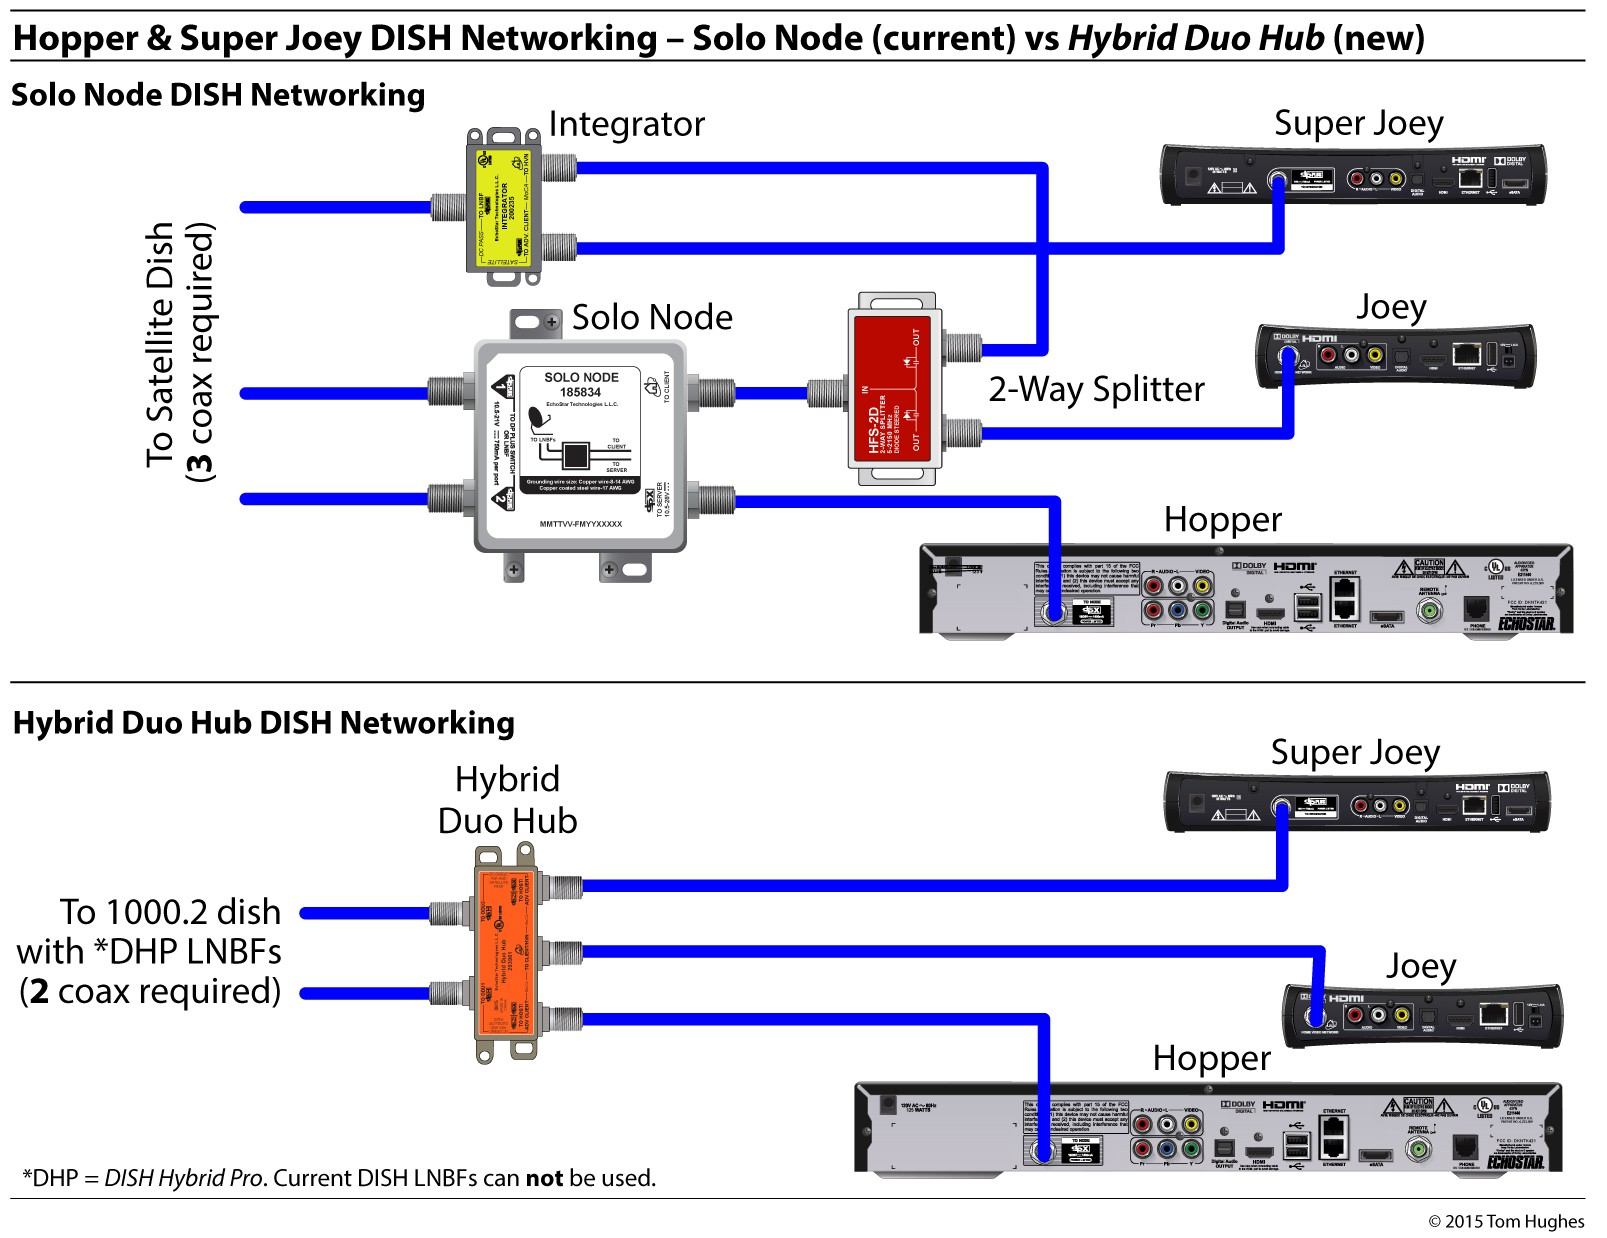 dish hopper joey wiring diagram Collection-Network Wiring Diagram Beautiful Dish Network 722 Wiring Diagram Wiring Diagram 2-e